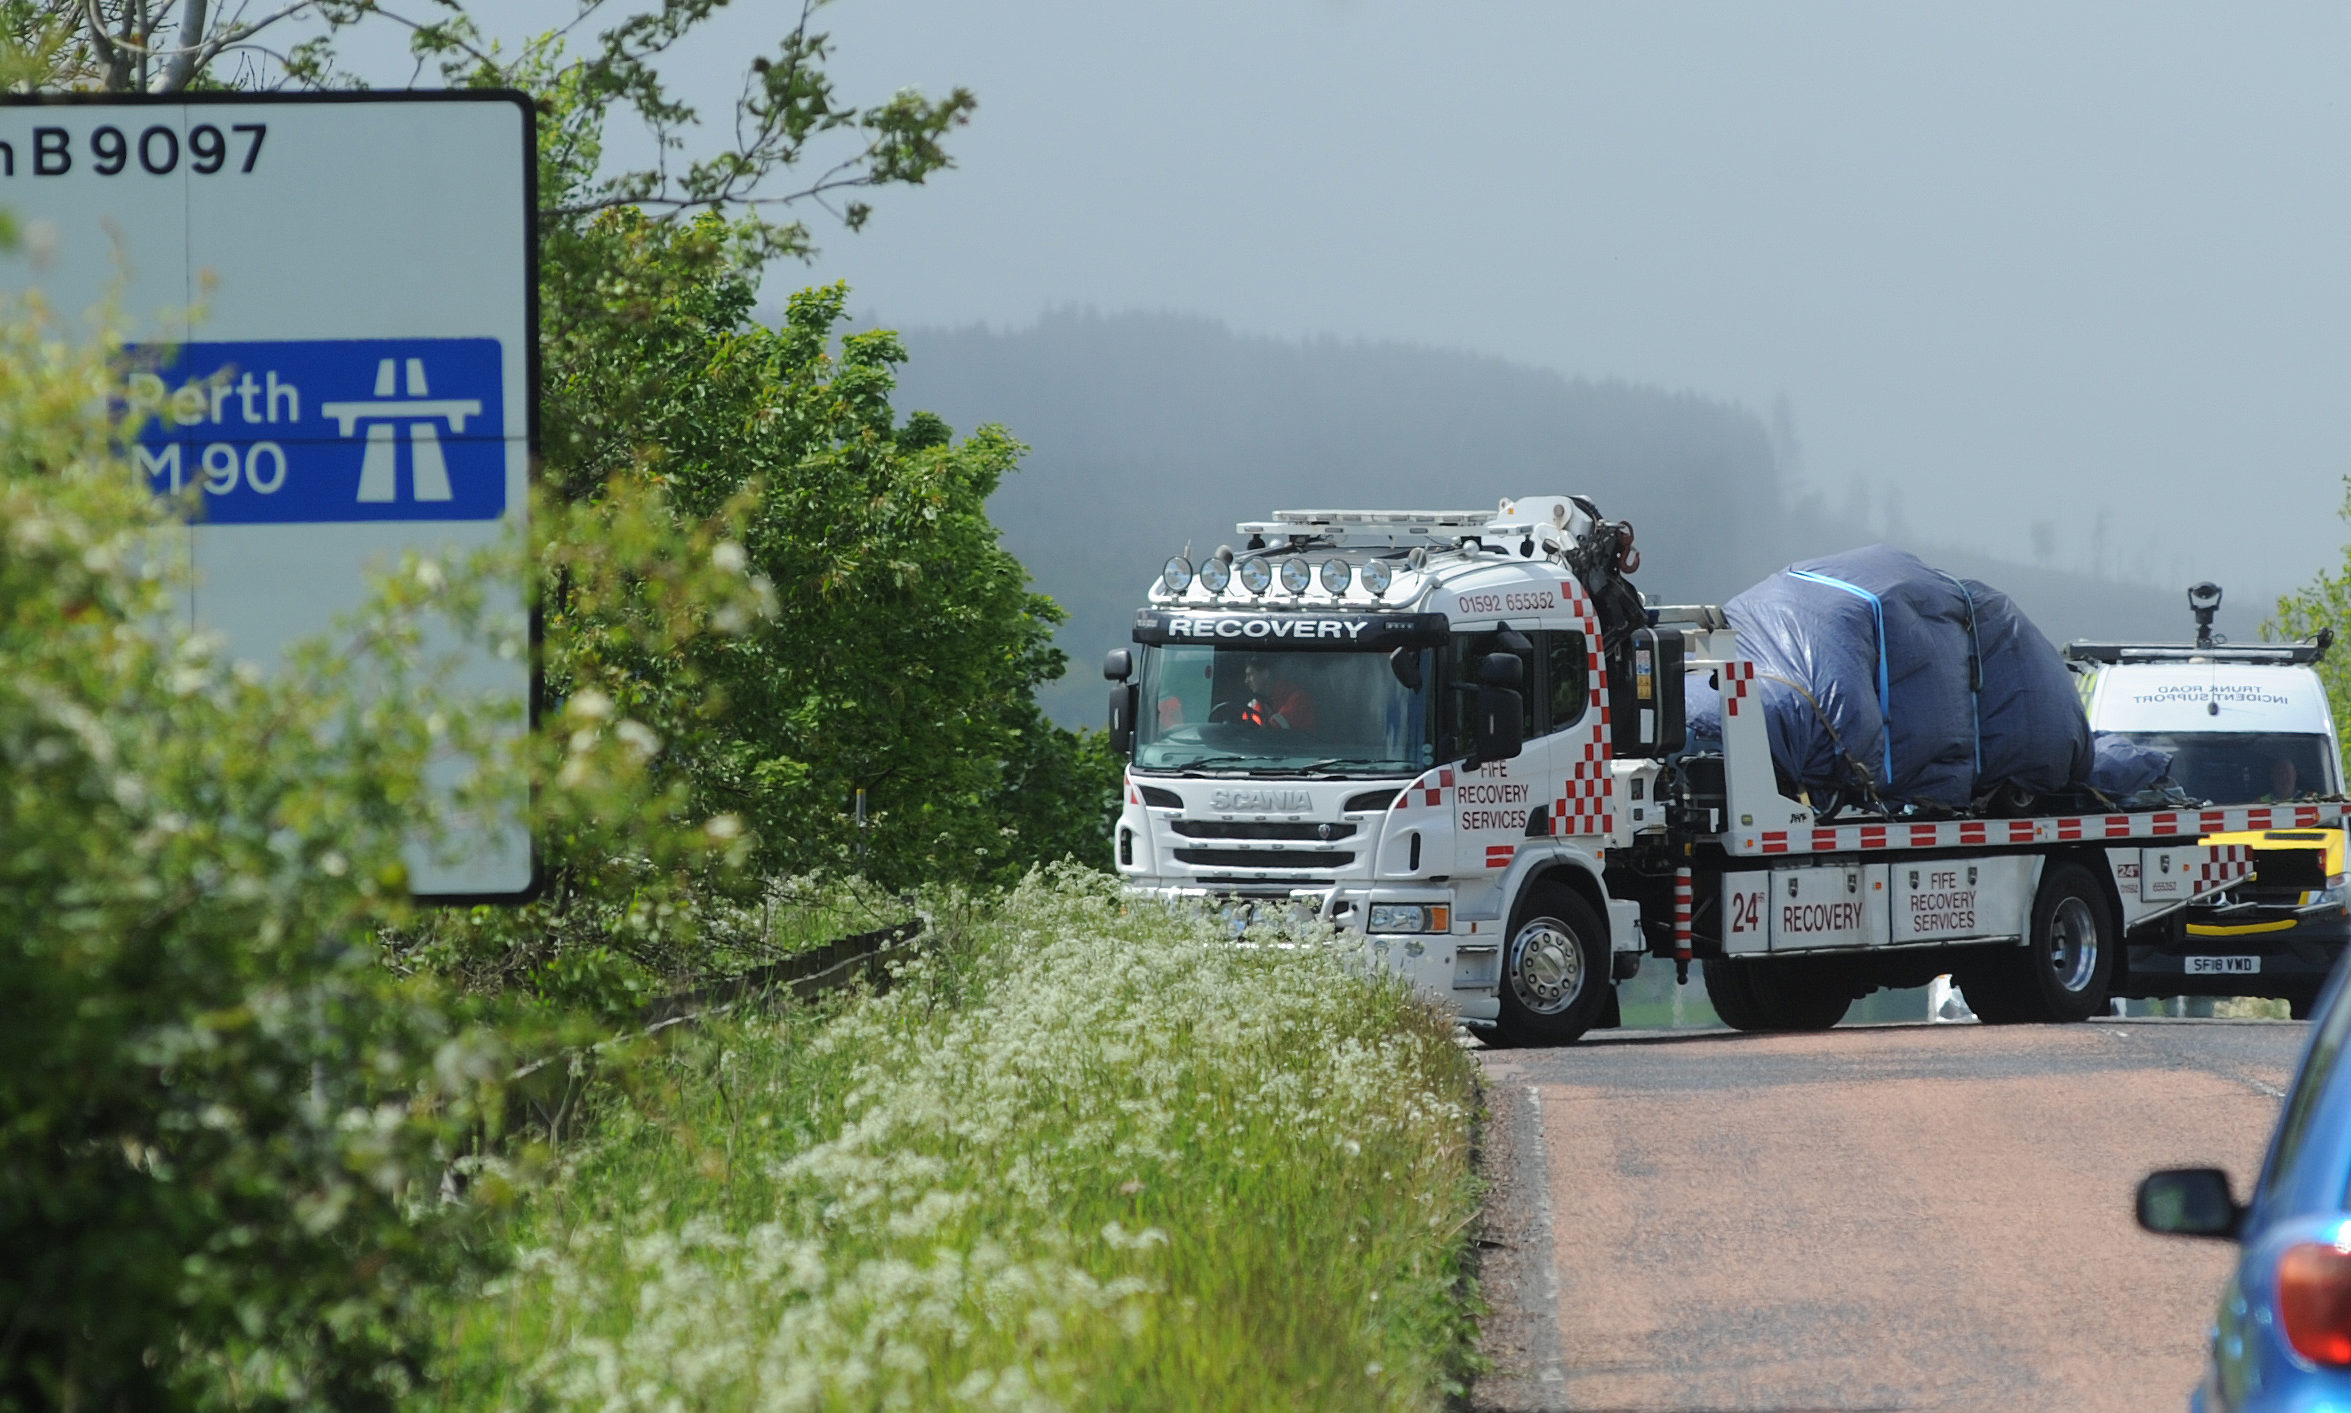 A recovery vehicle at the scene of the incident on the M90 near Kelty.